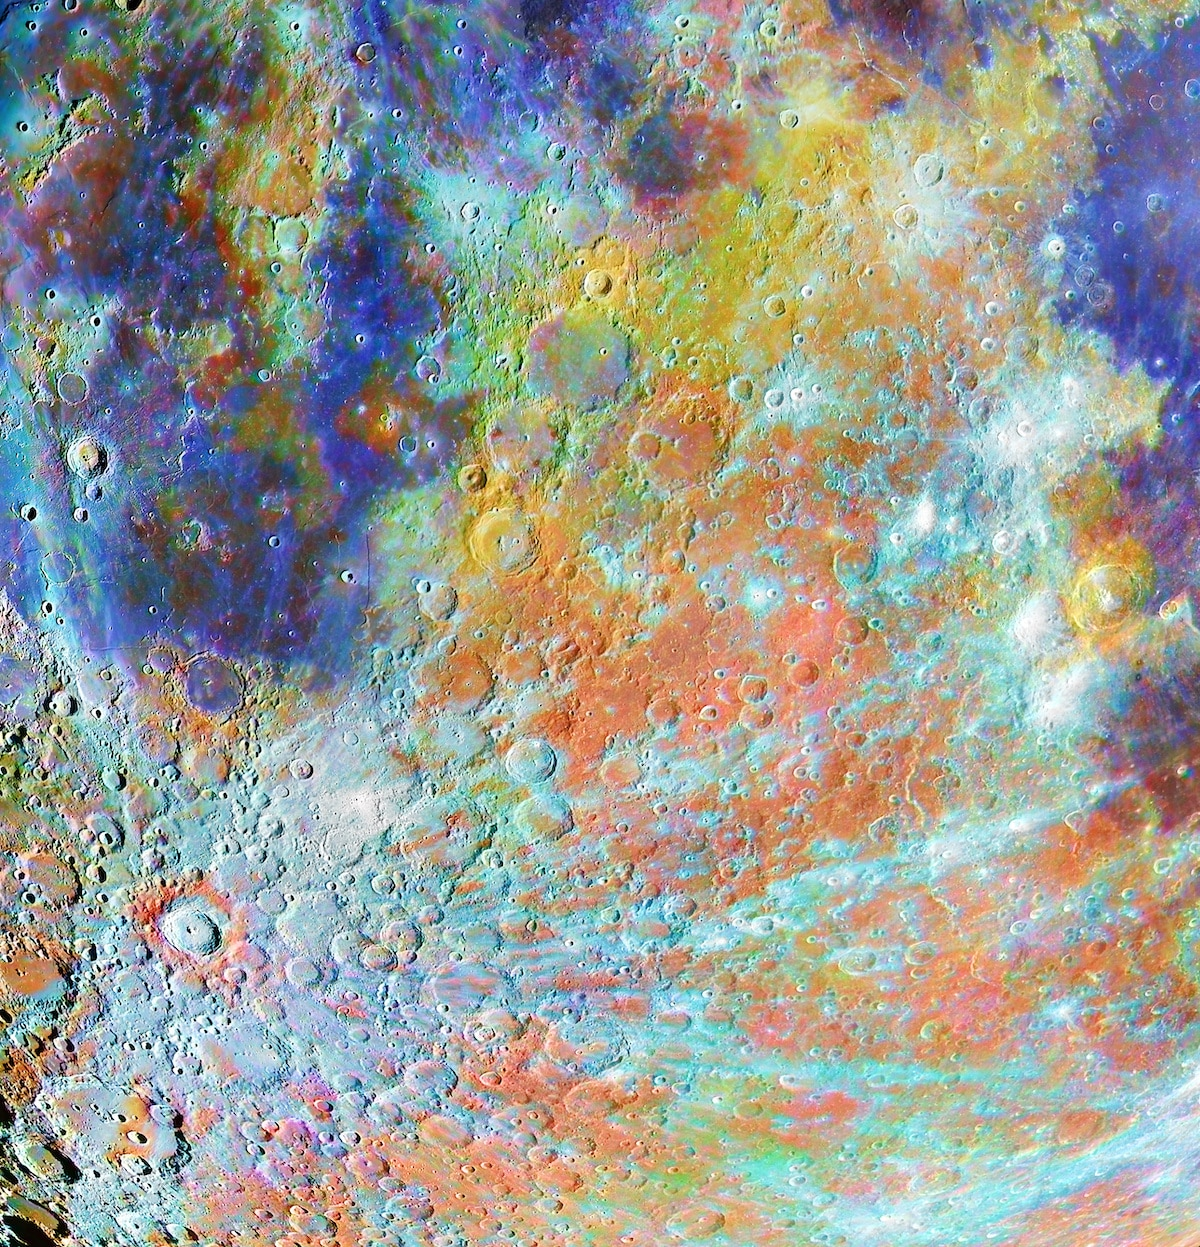 Colorful Craters on the Moon